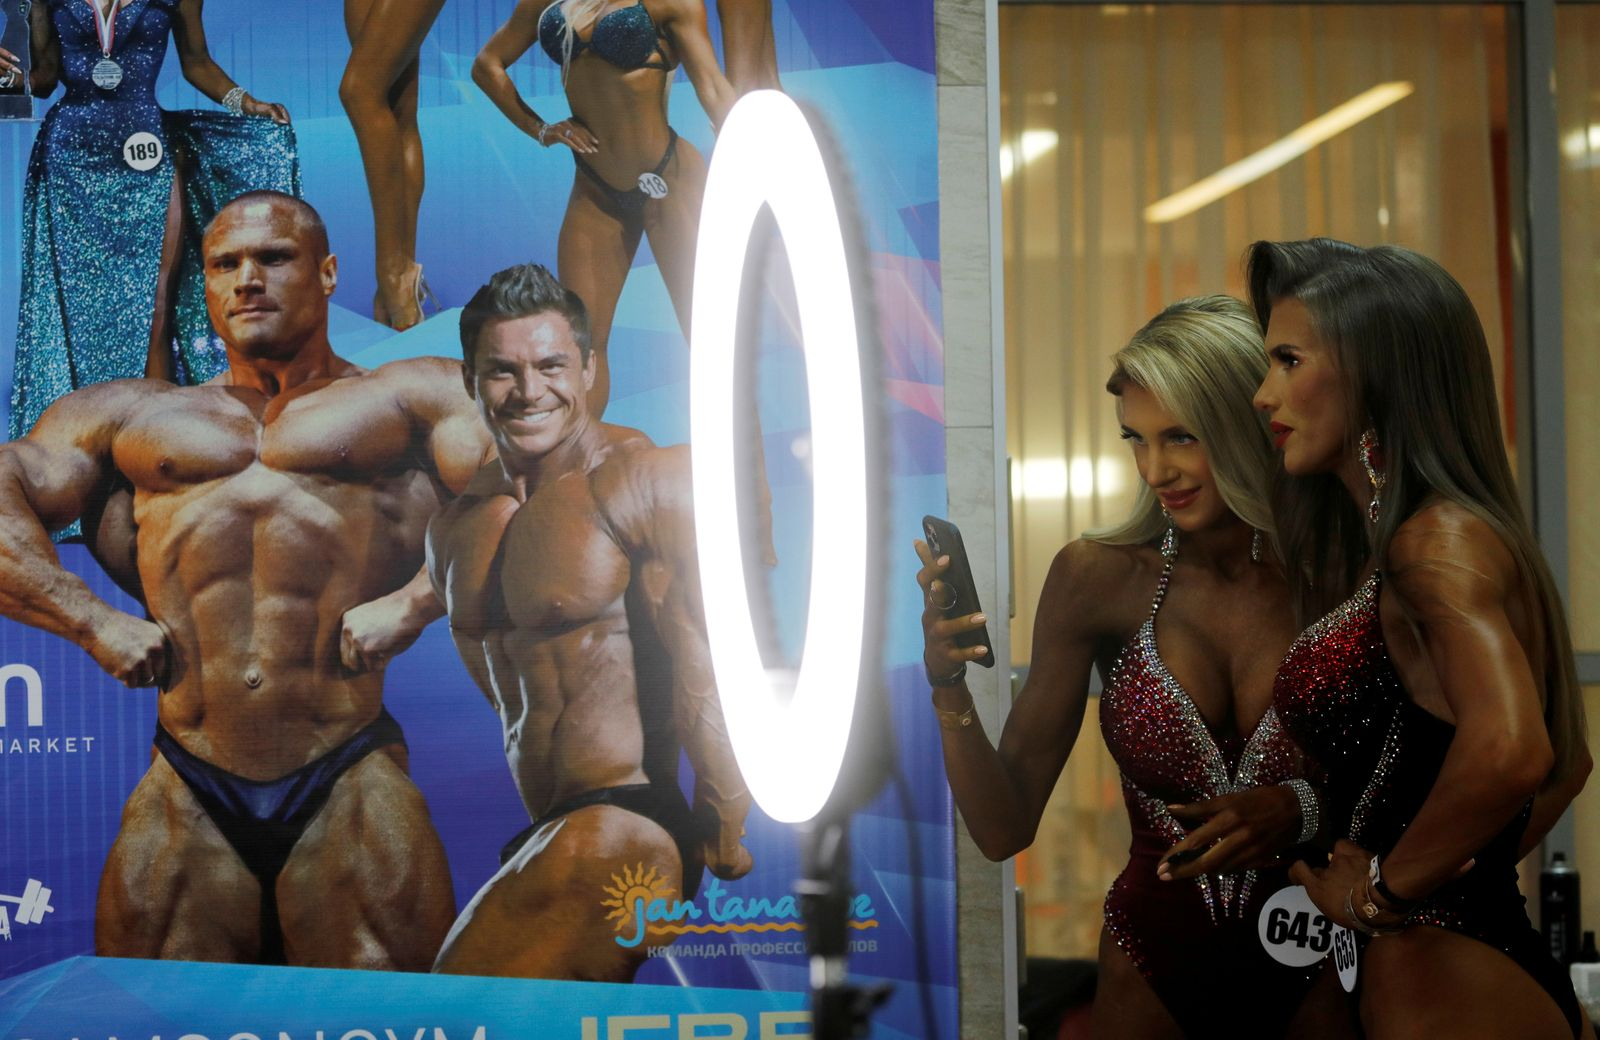 Participants take pictures backstage during a local bodybuilding championship in Krasnodar